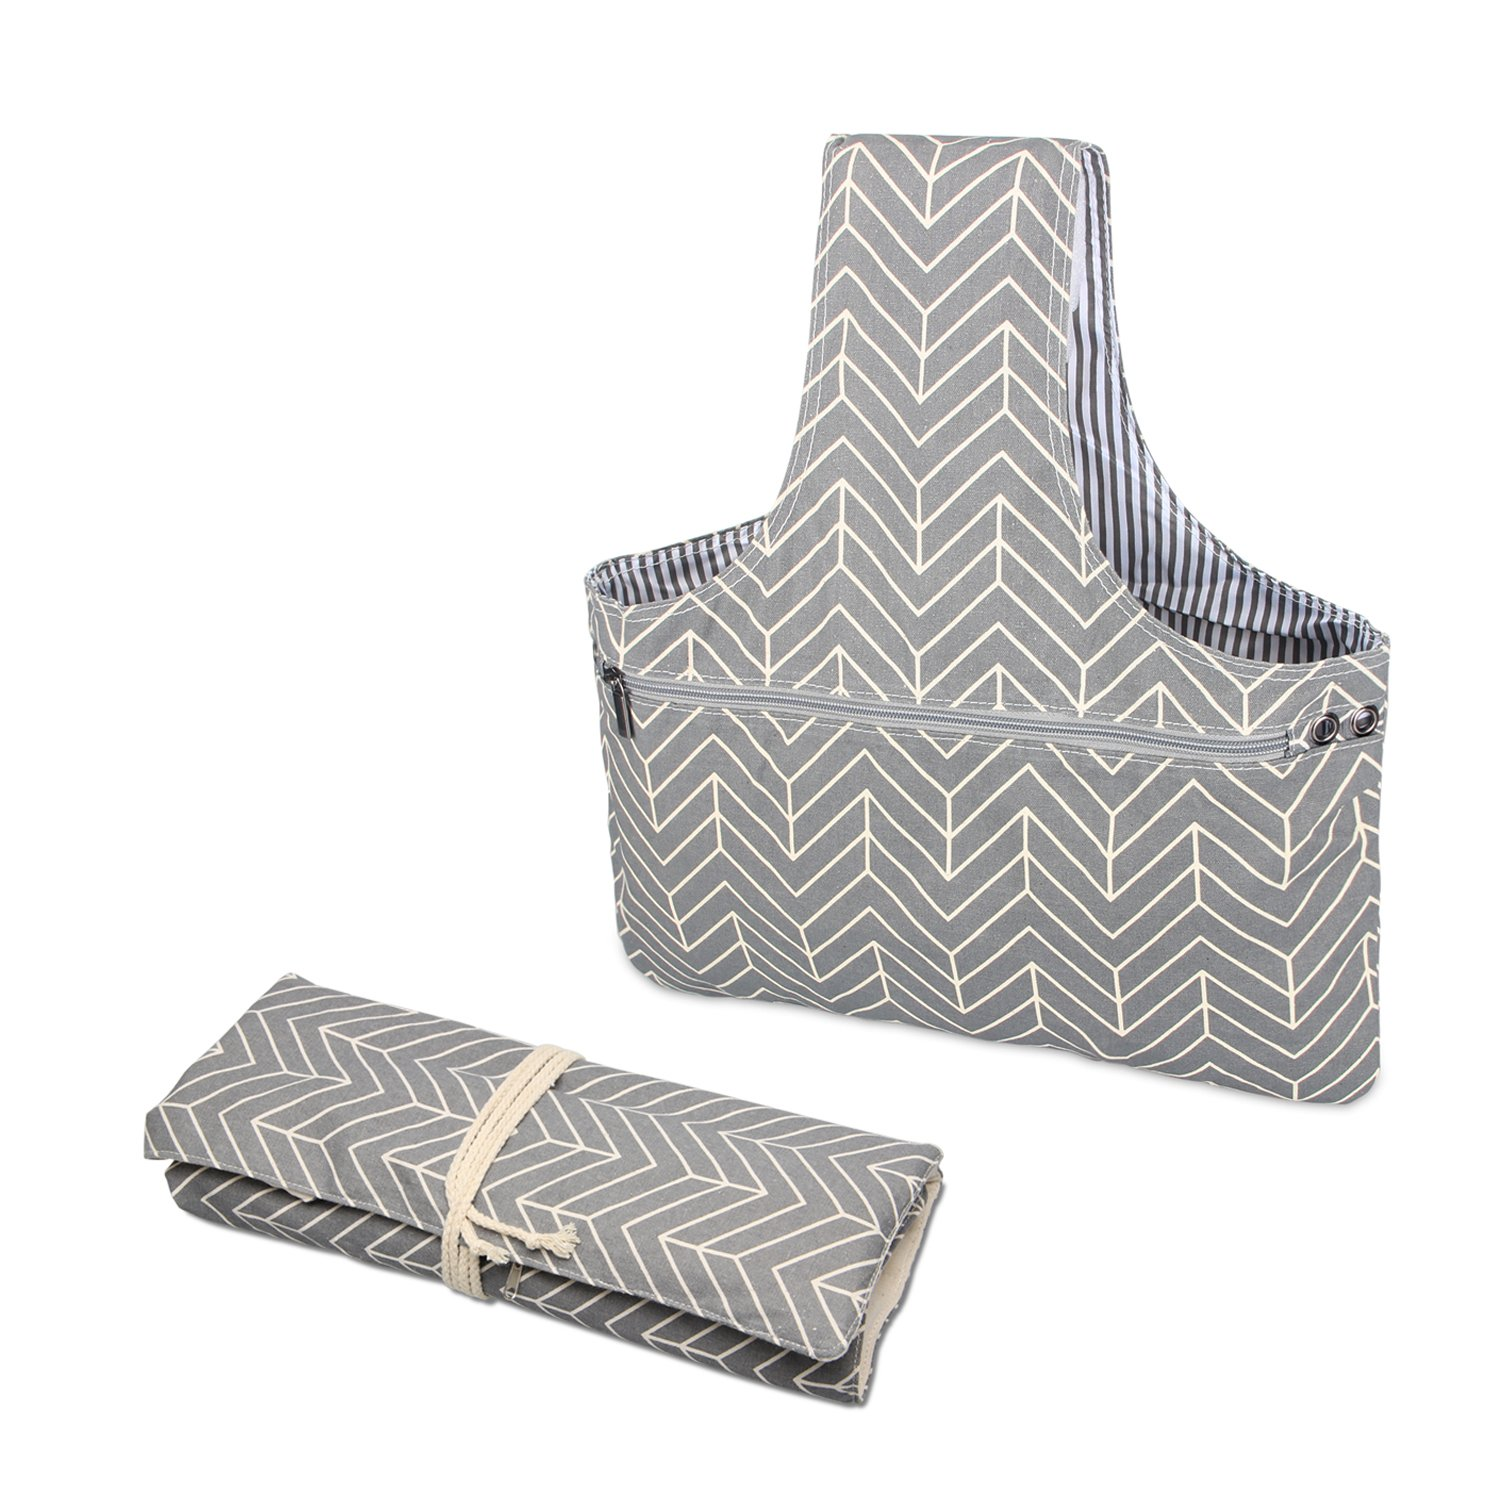 Teamoy 2 Pack Canvas Knitting Tote Bag and Knitting Needles Roll Holder for Yarn, Knitting Needles(14 Inches), Supplies and More, Perfect Size for Knitting on The Go(Large, Arrows)